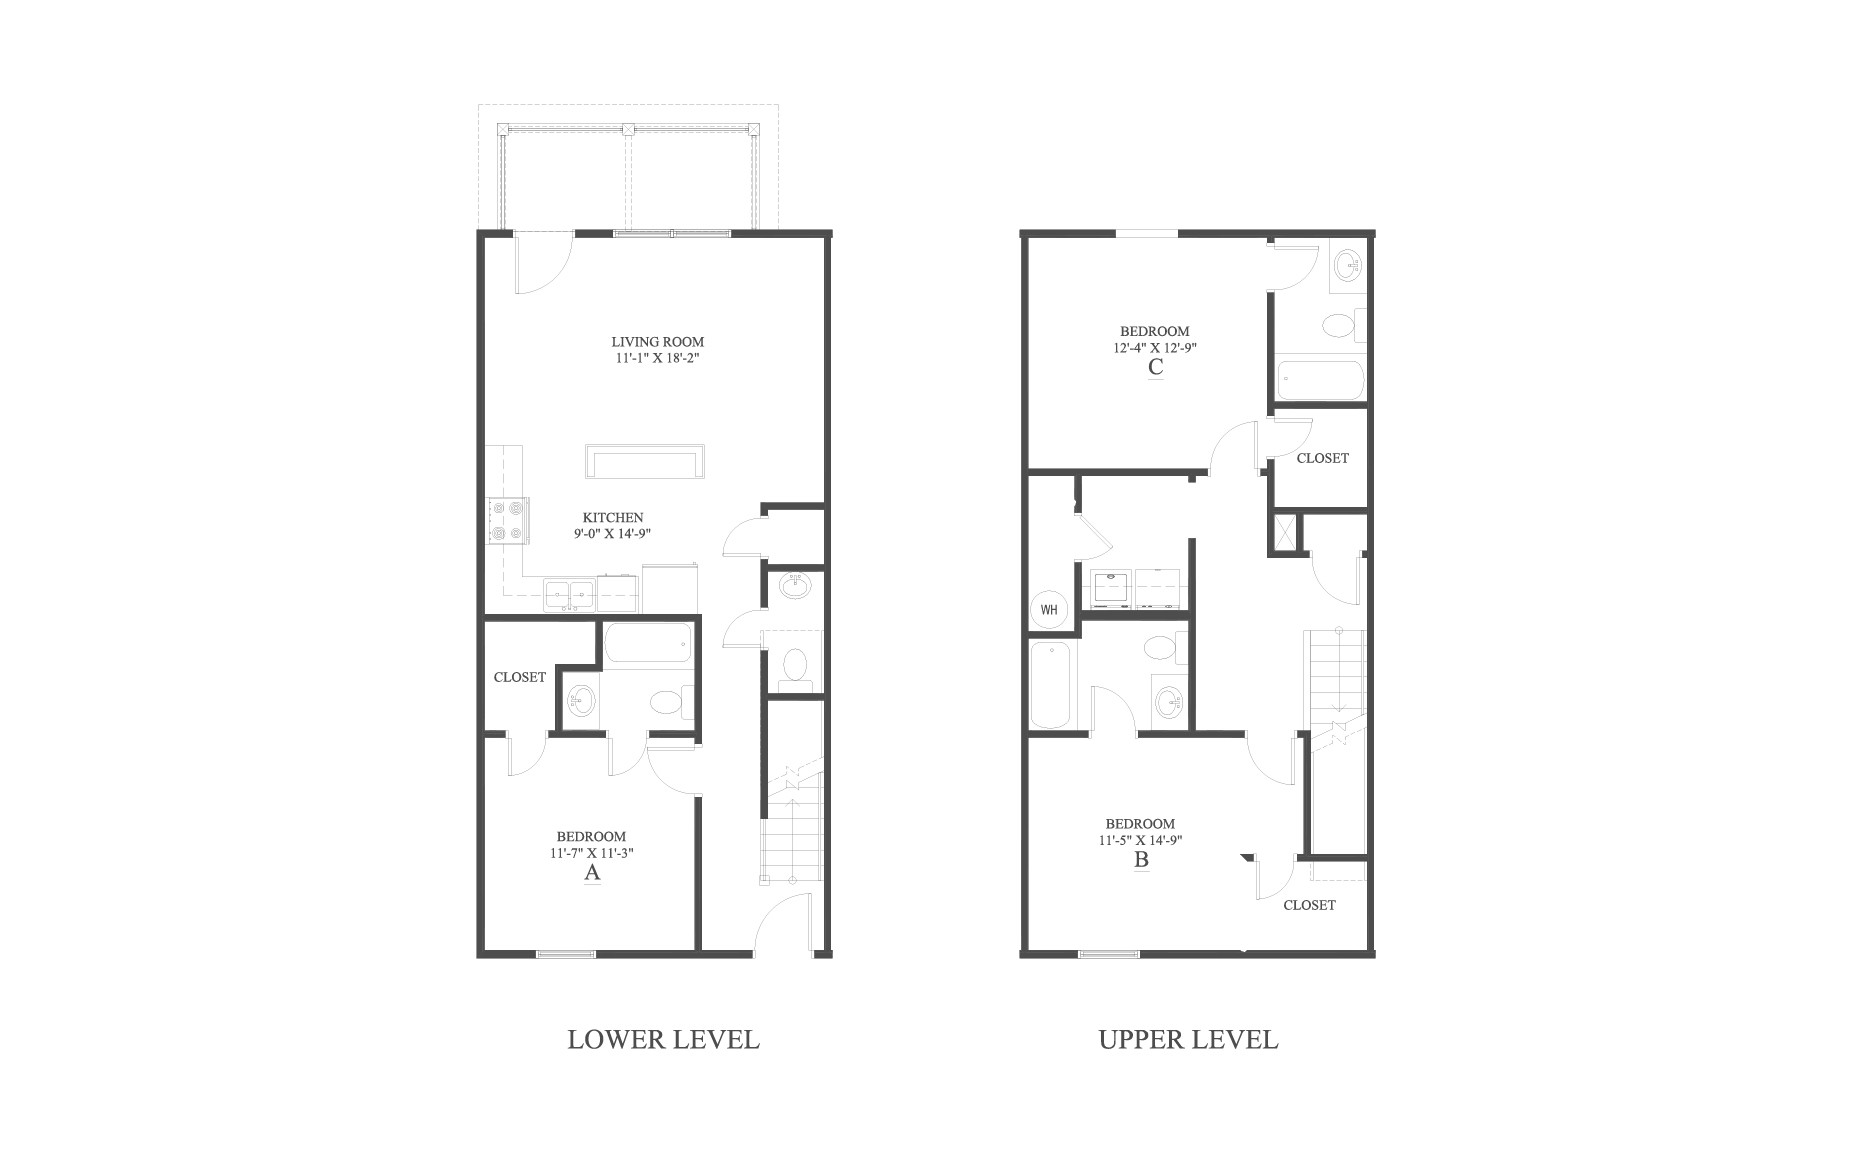 The 3 Townhome Floor Plan is a 3 bedroom home with over 1440 square feet.